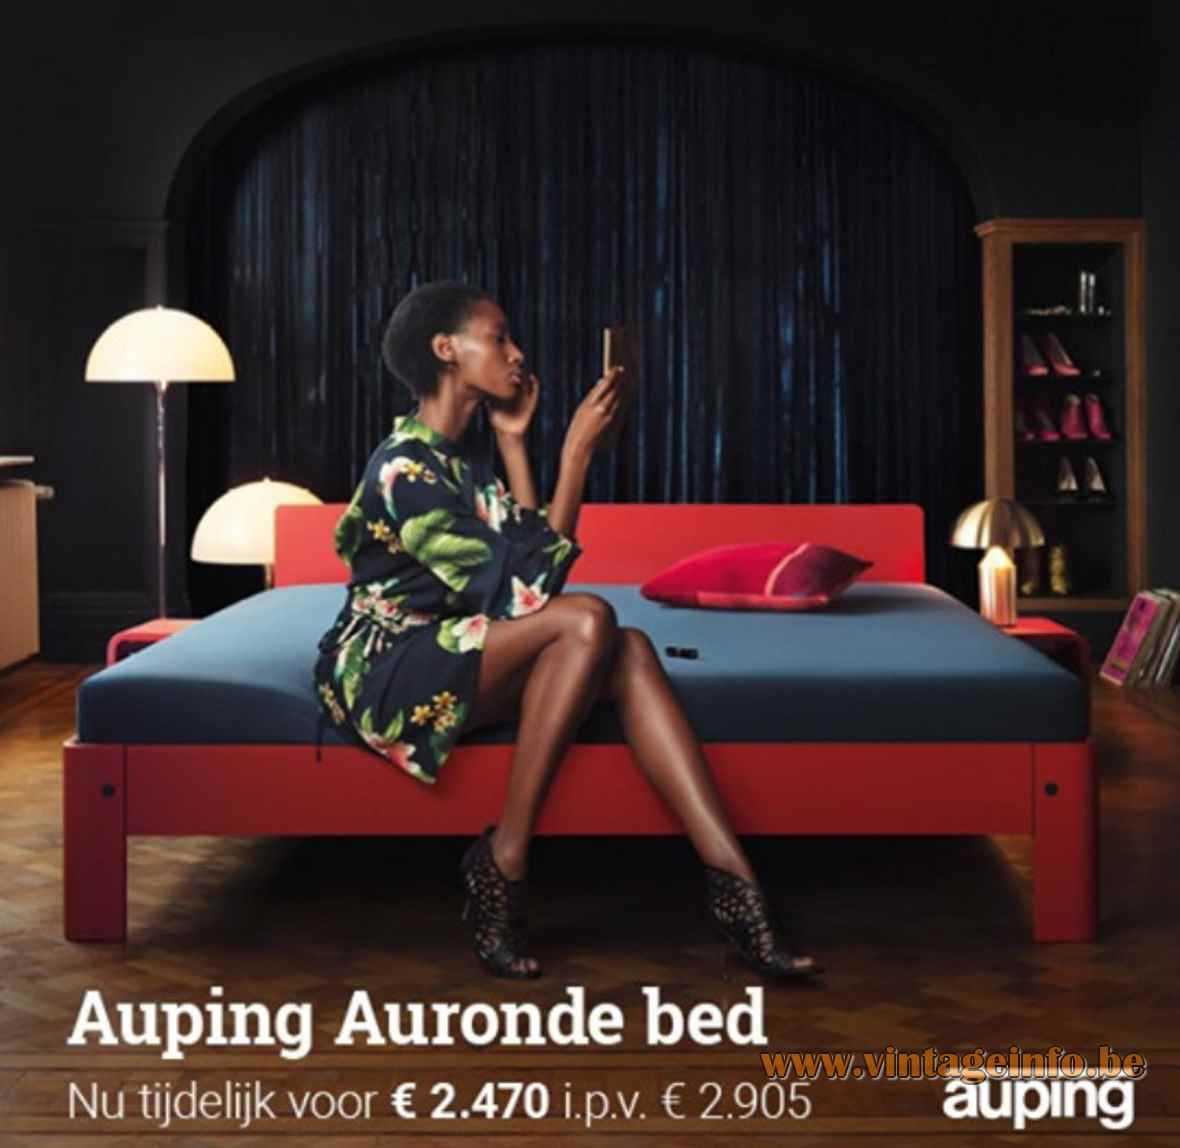 Verner Panton Panthella floor and table lamp used for an Auping bed publicity in October 2019